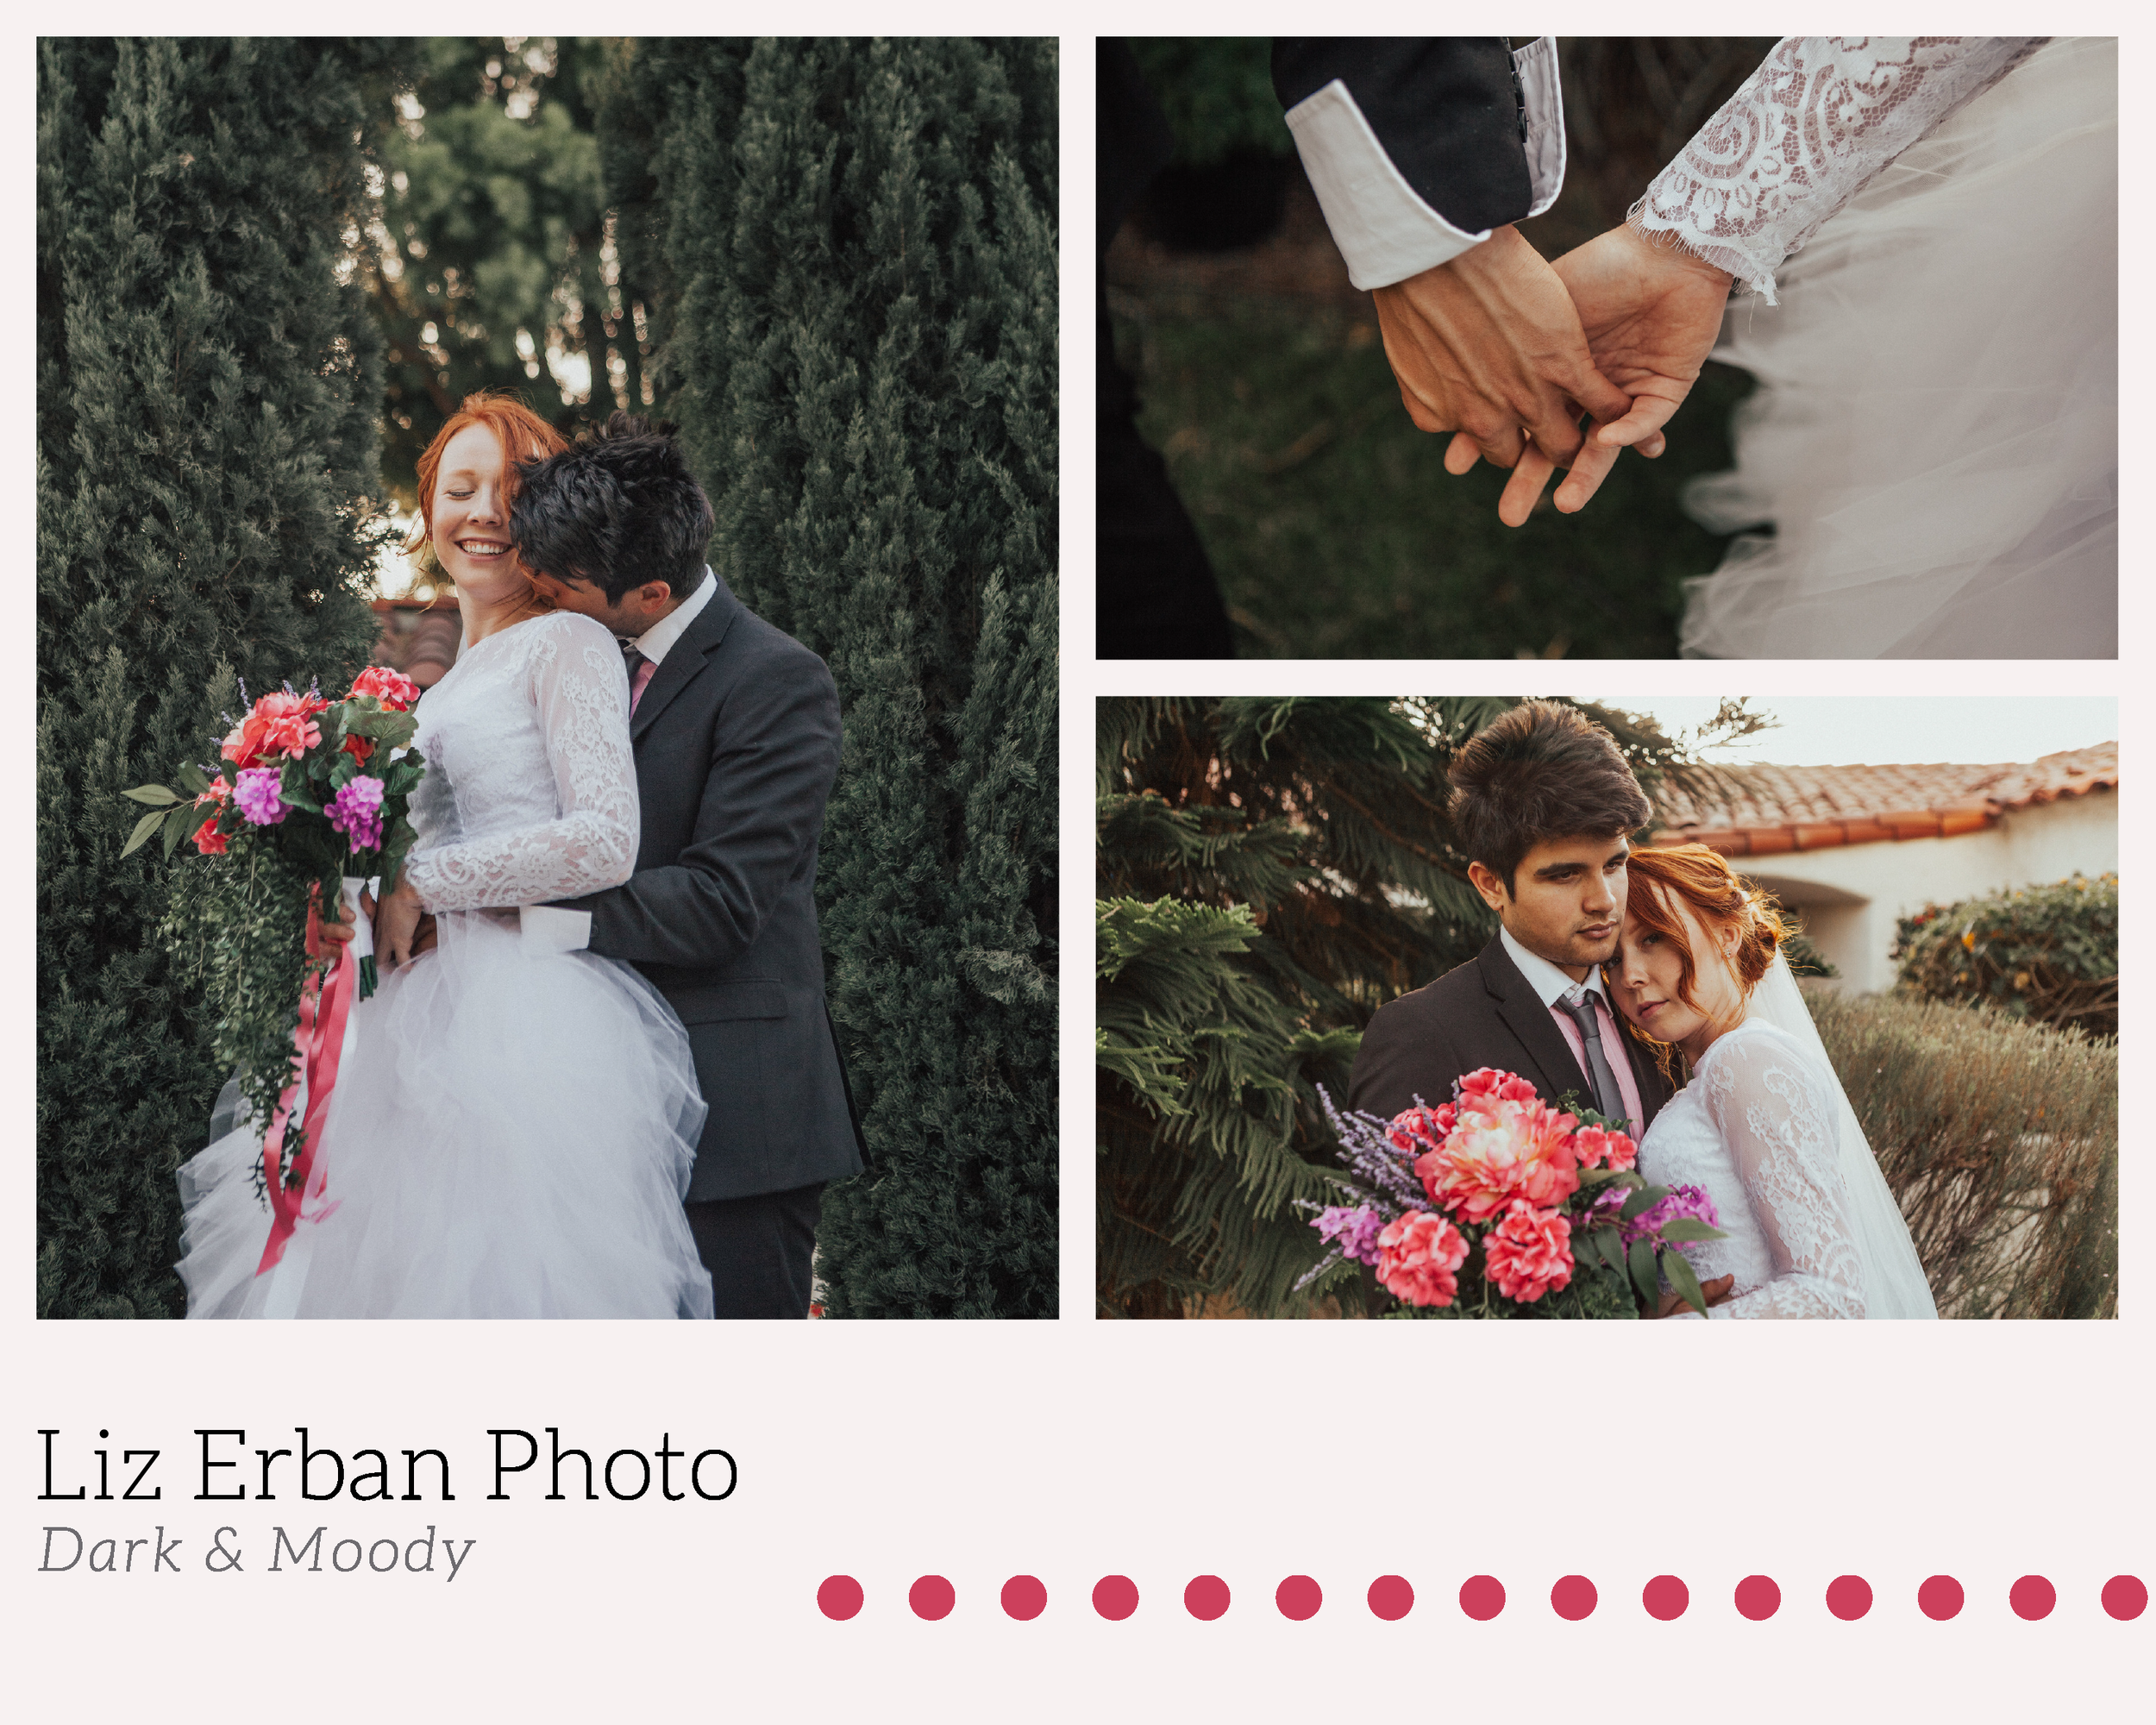 Liz Erban Photo - Dark & Moody Wedding Photography Style2.png